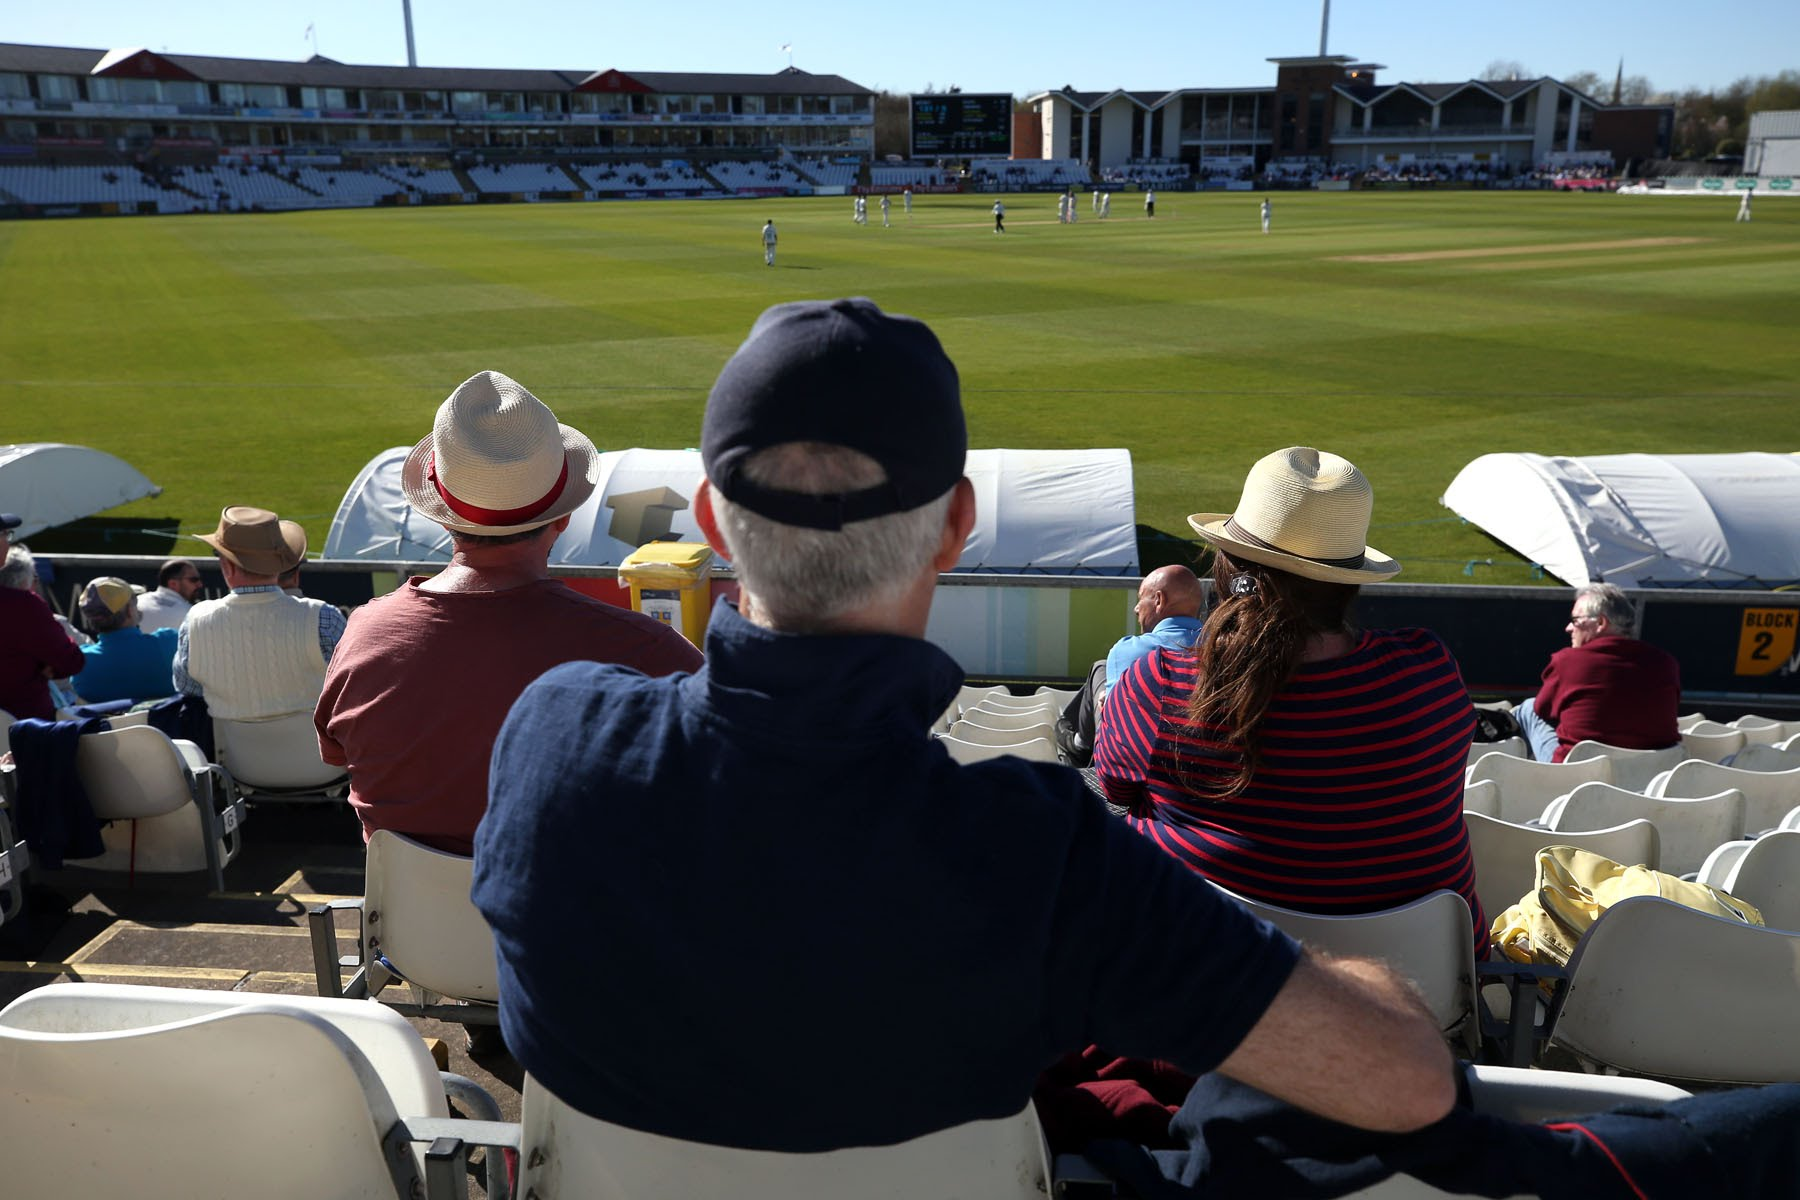 WORLD CUP: The Riverside in Chester-le-Street will host three matches of the 2019 Cricket World Cup next summer